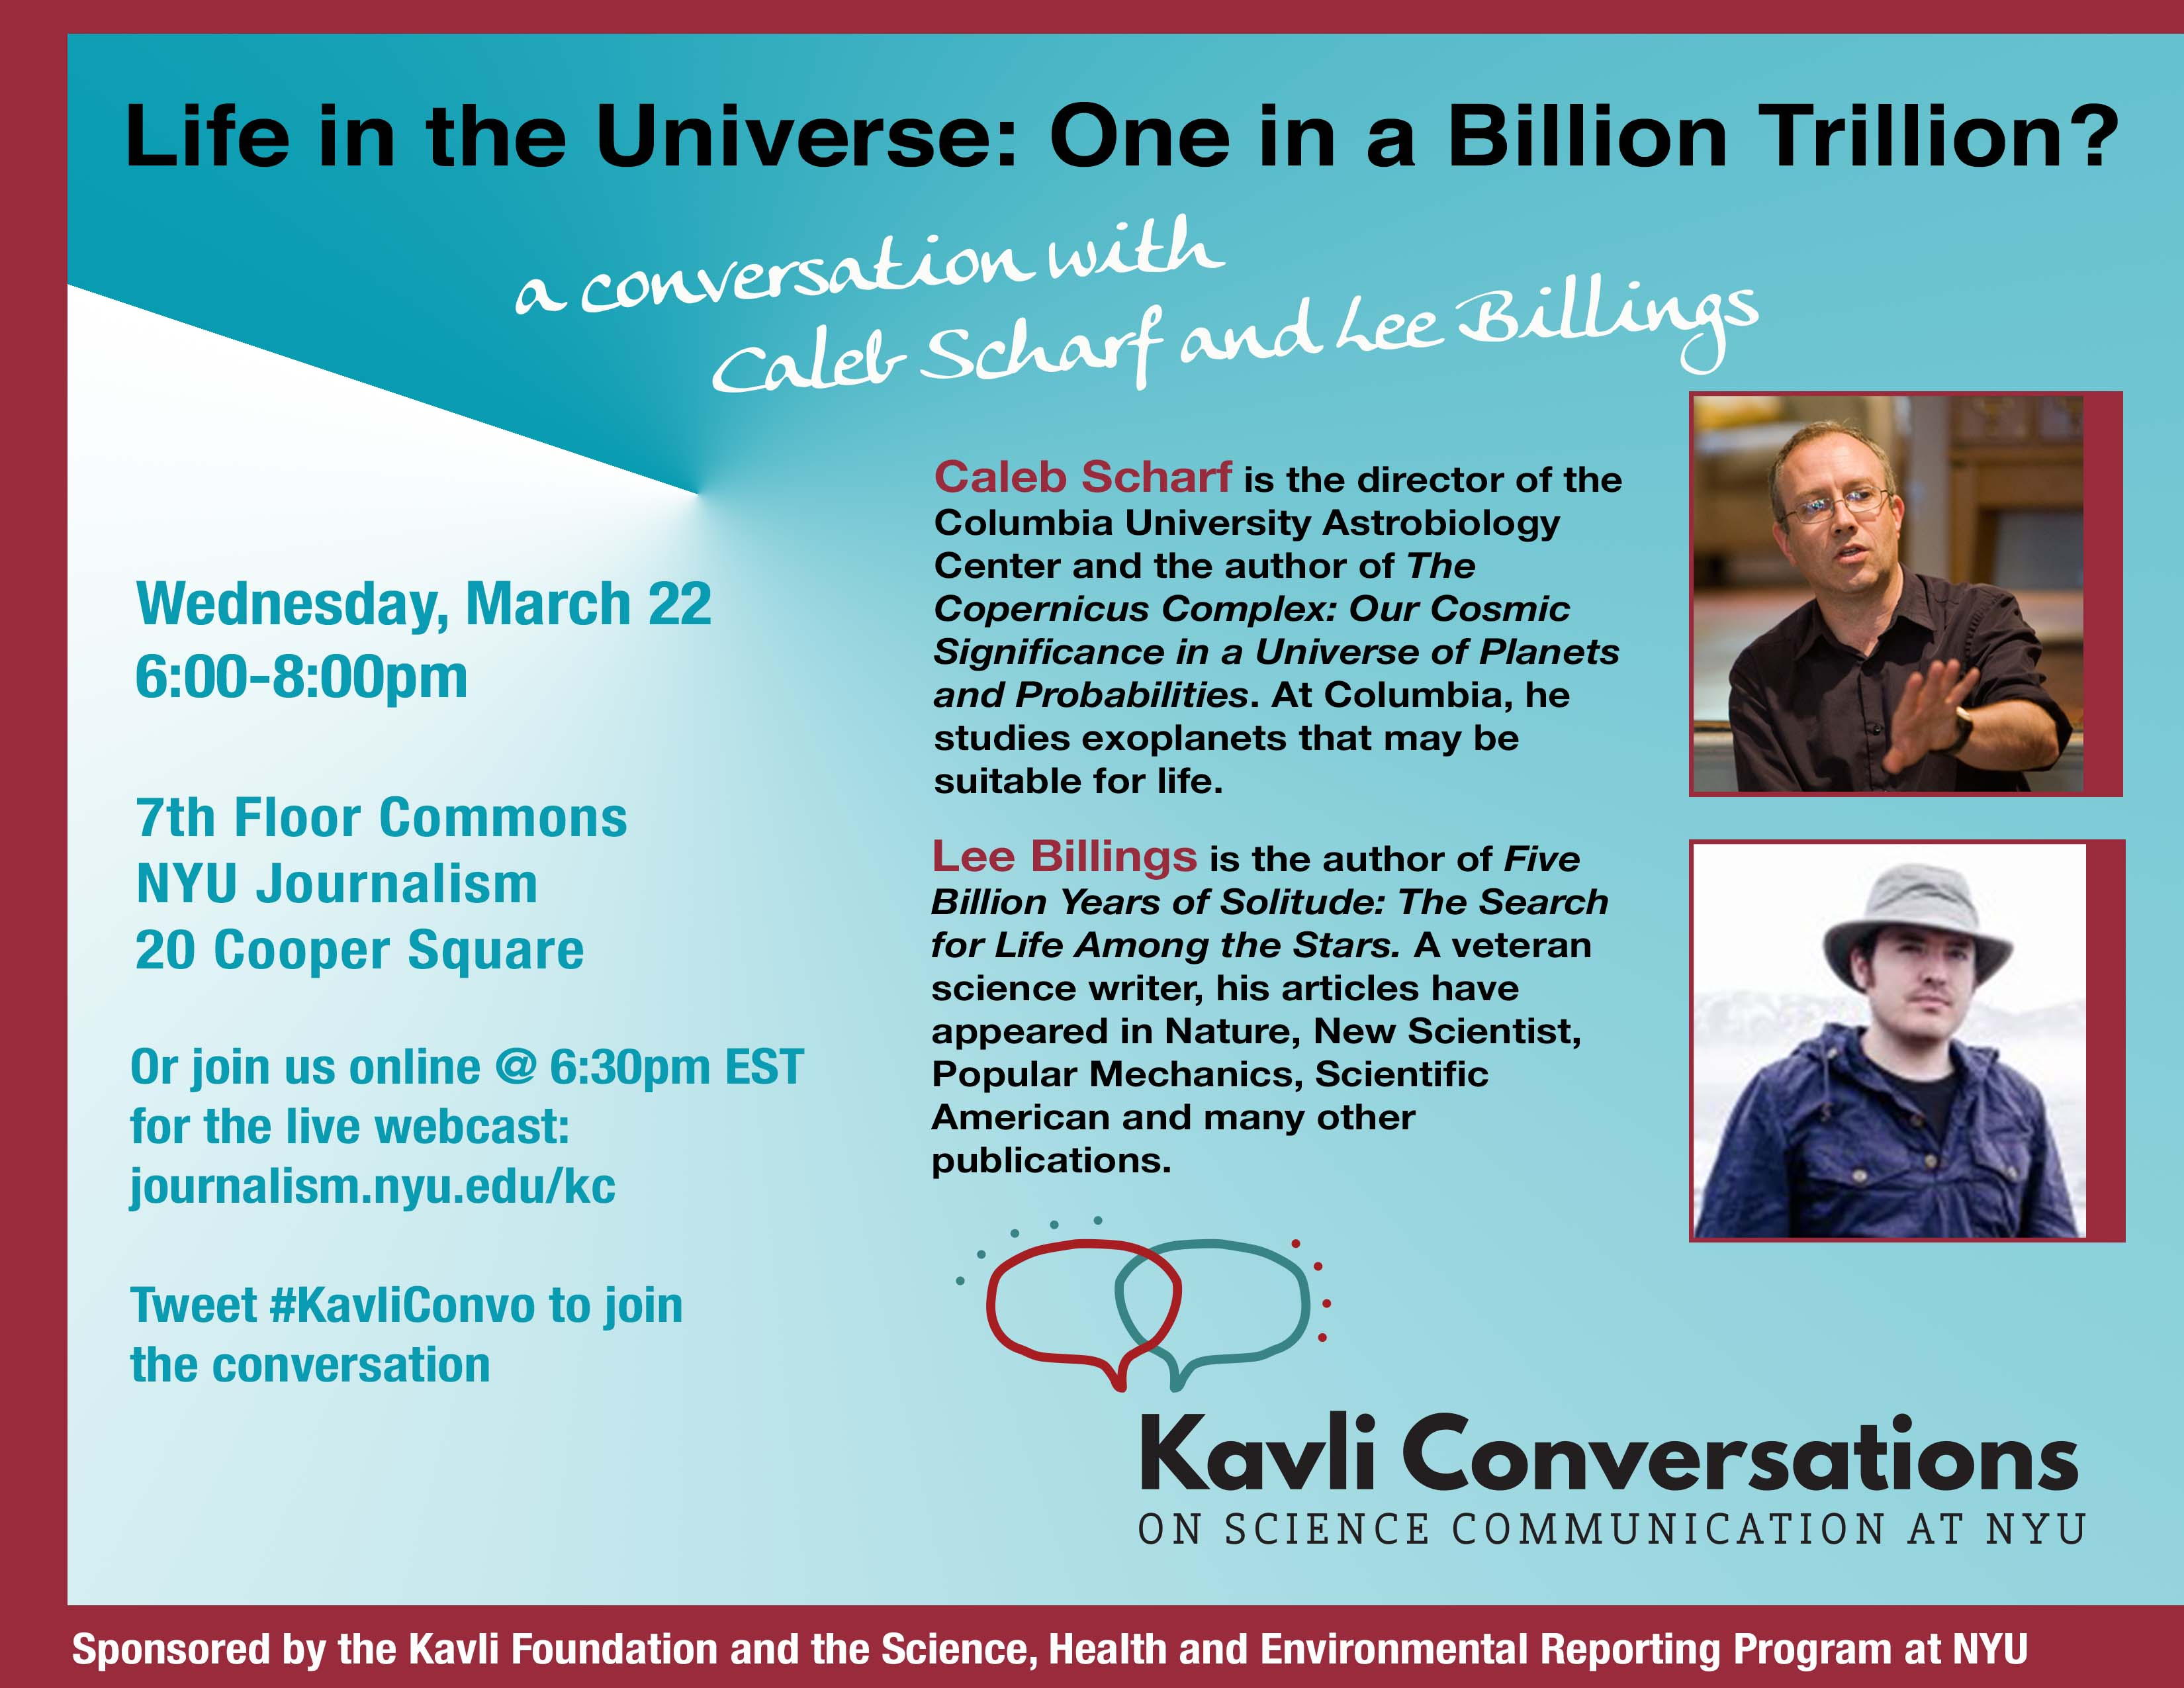 Life in the Universe: One in a Billion Trillion? - Event Poster 22 Mar 2017